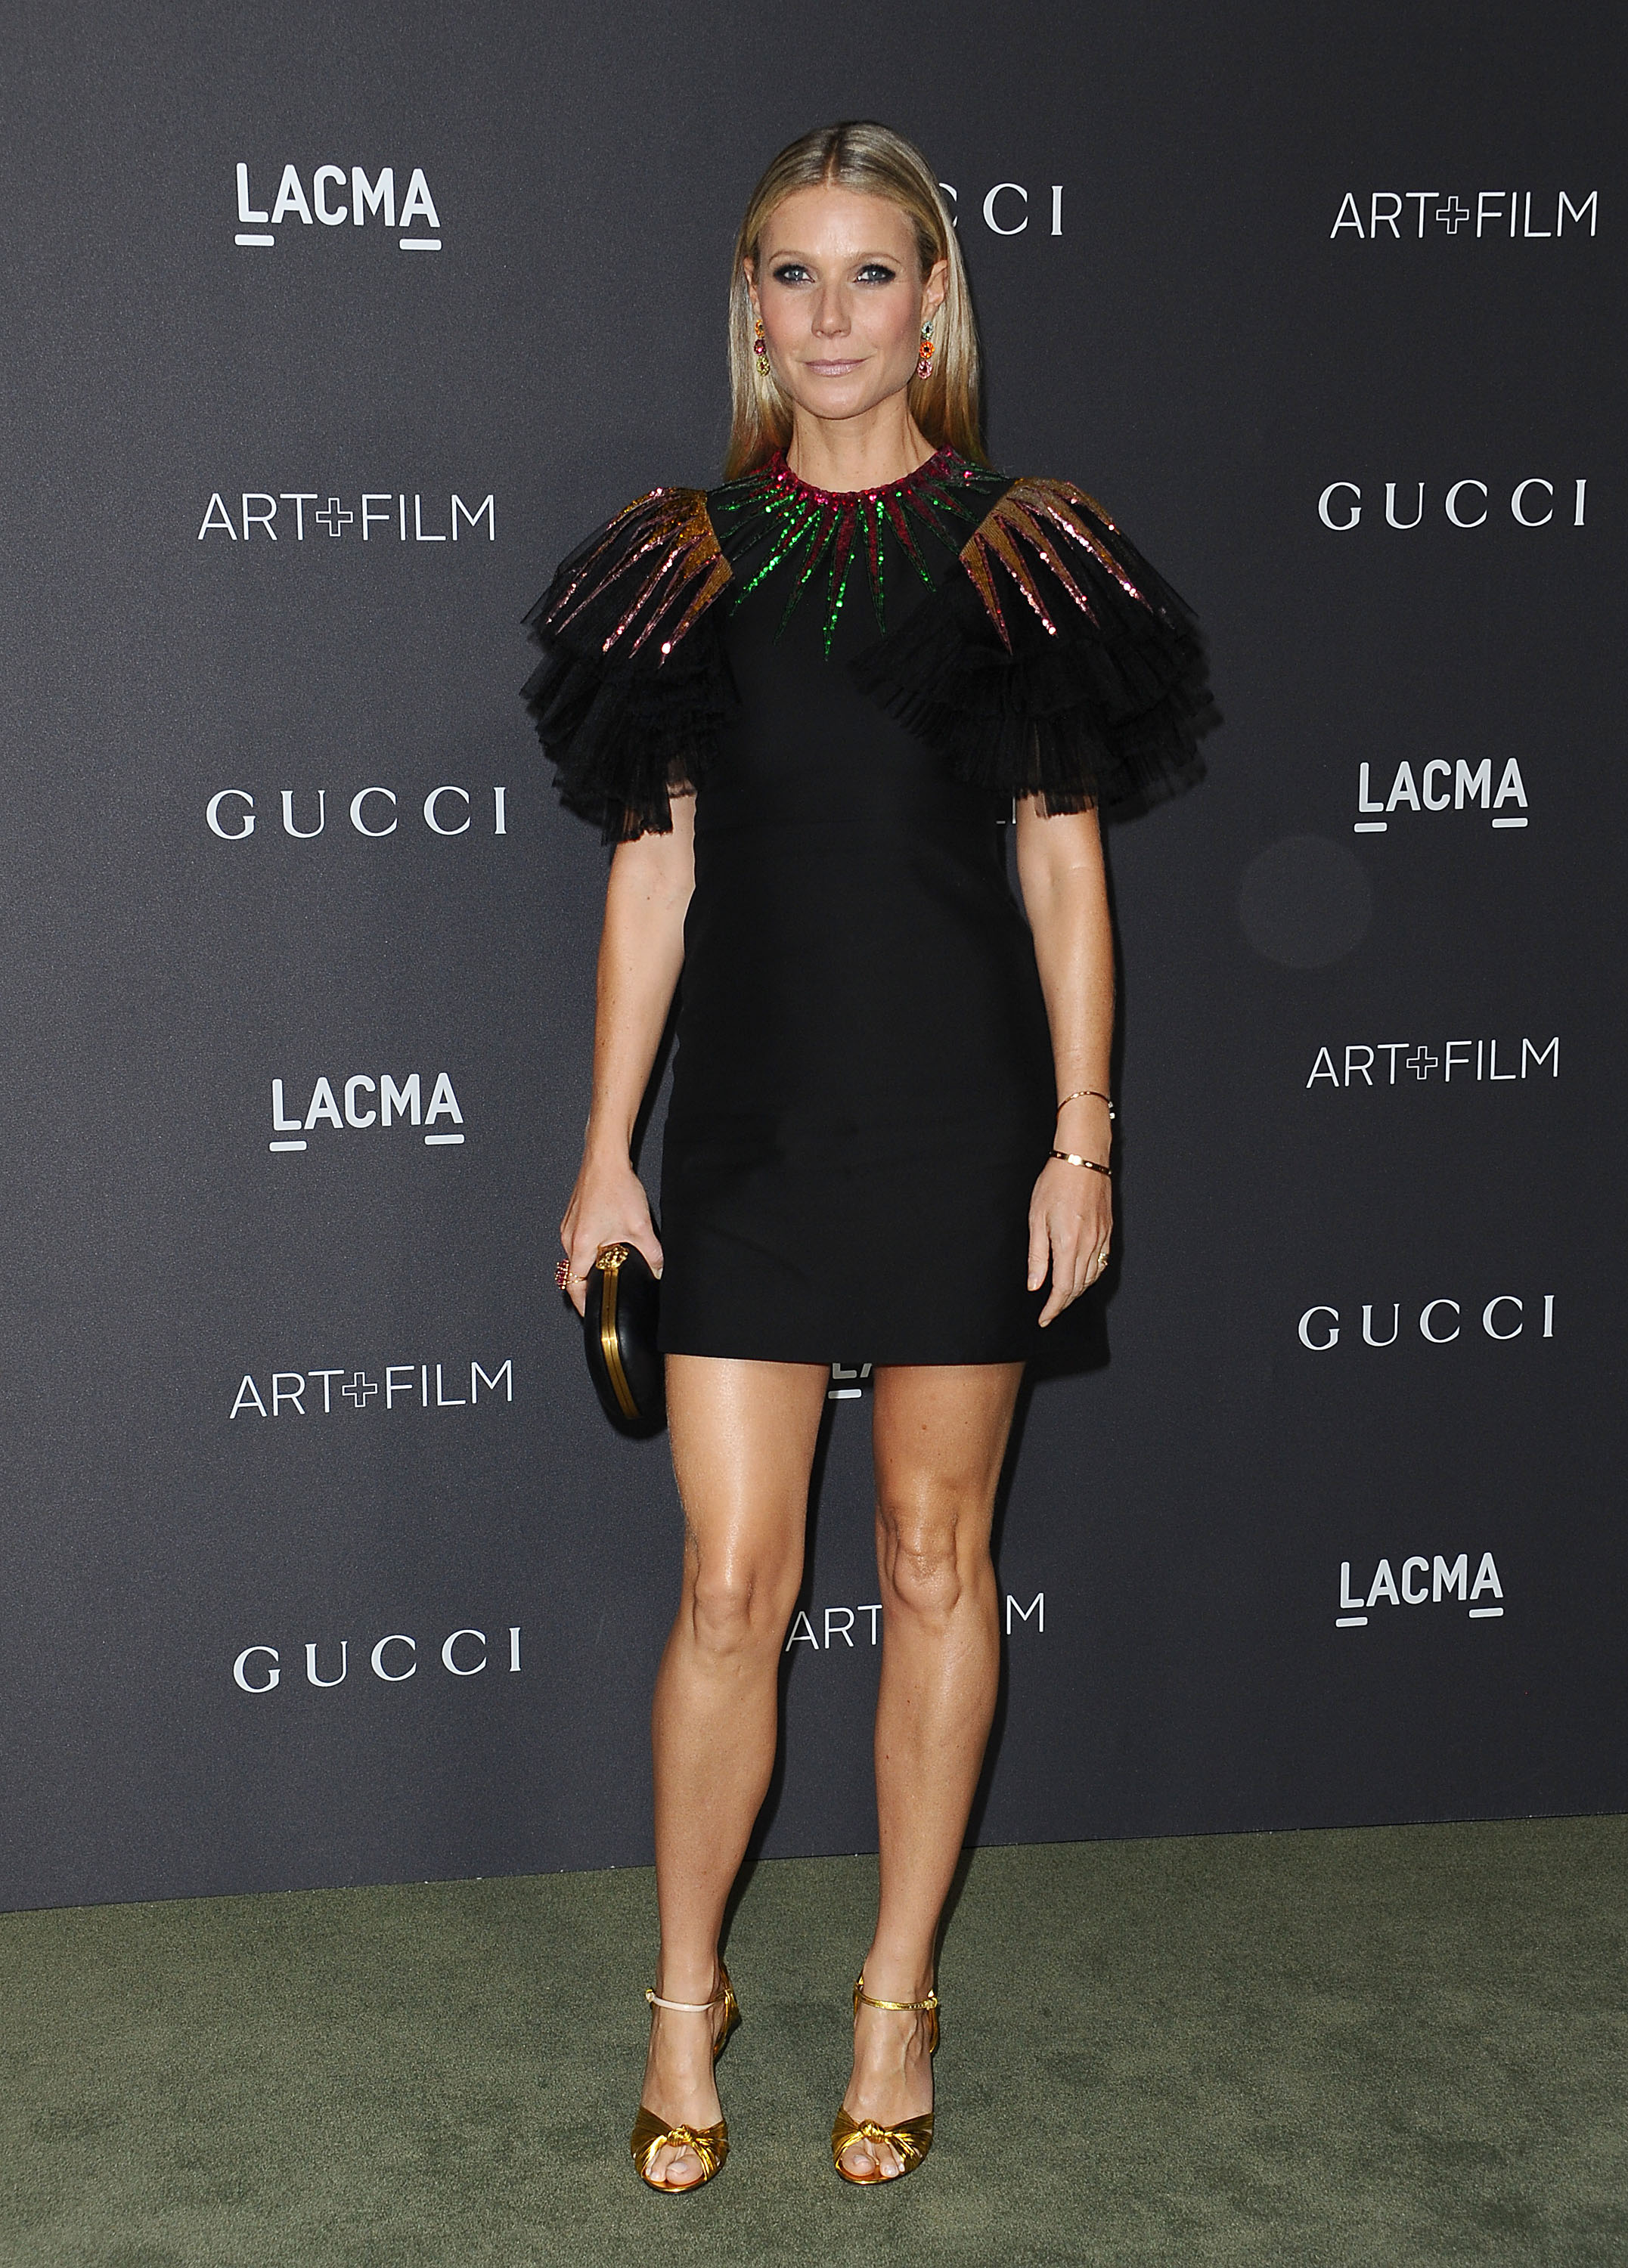 Gwyneth Paltrow in Gucci dress